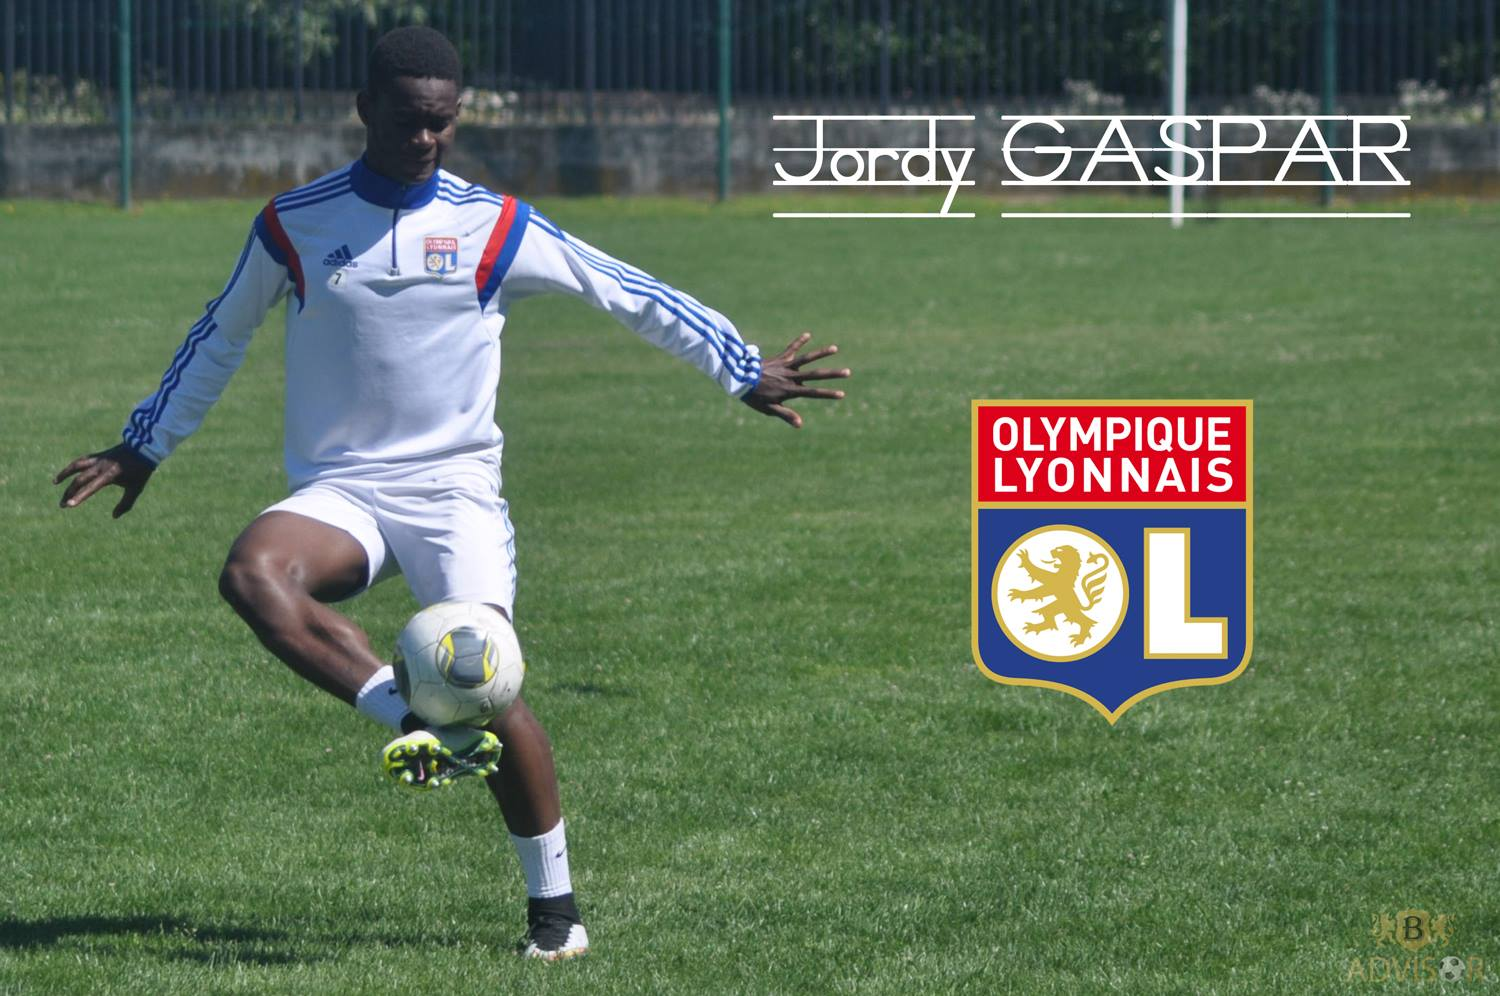 Photo : Facebook officiel Jordy Gaspar